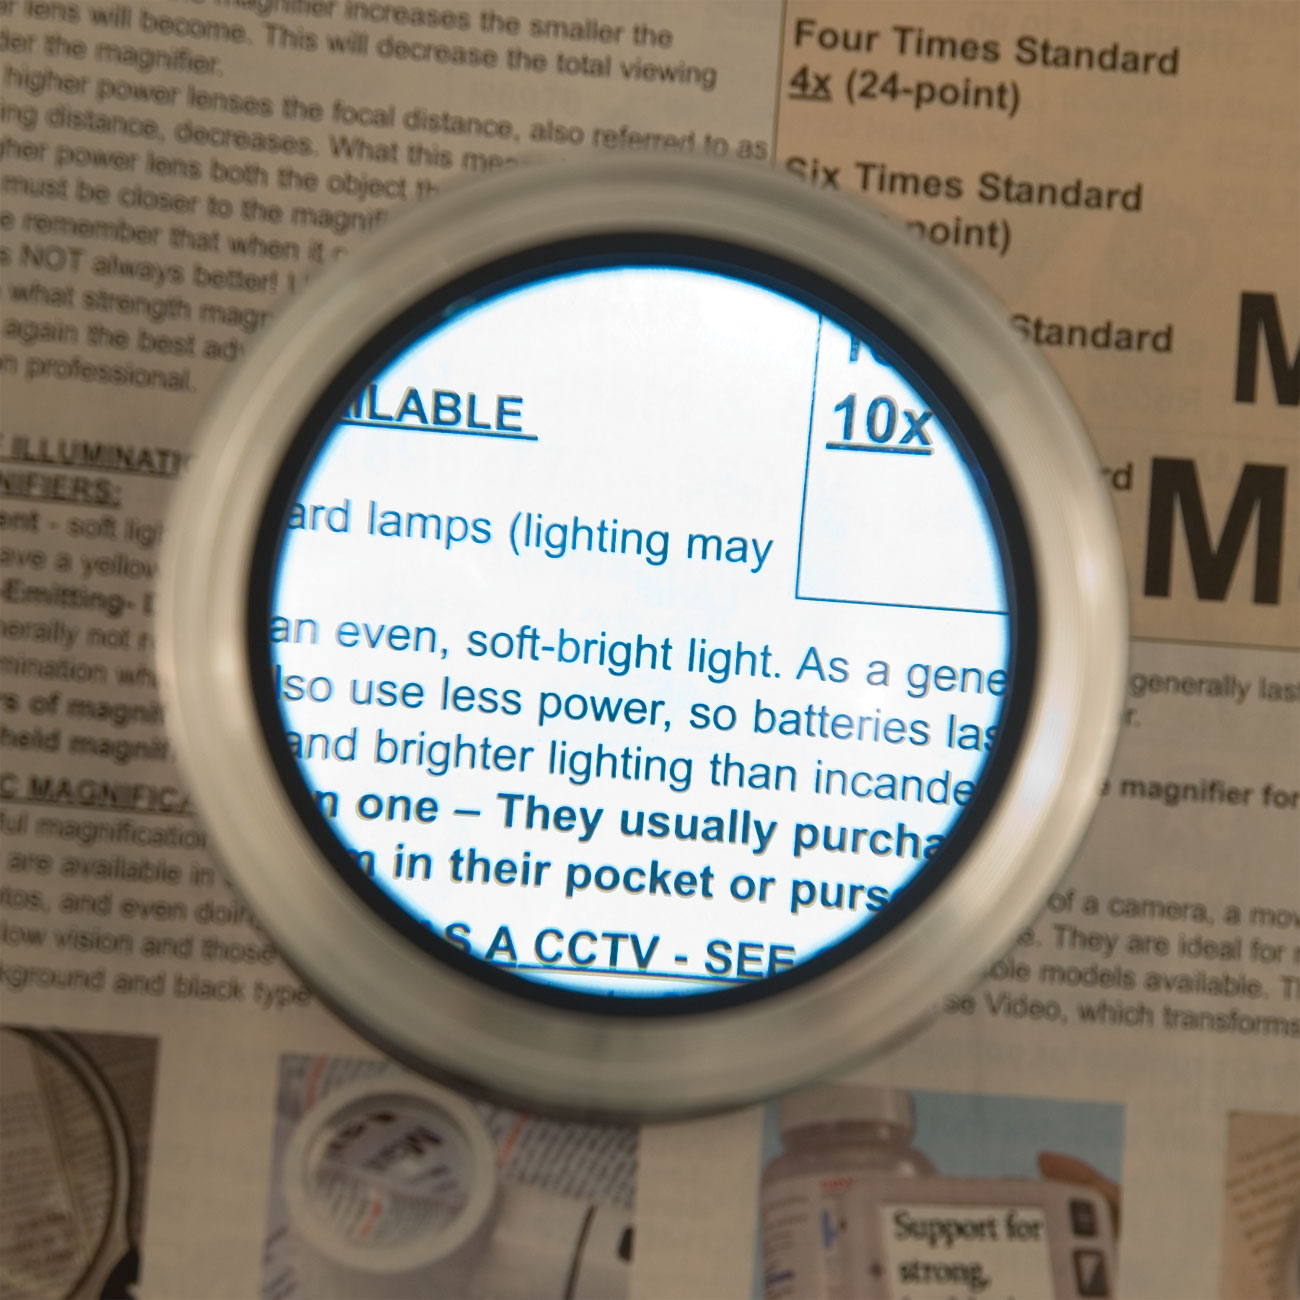 One-Touch LED 3x Zoom Magnifier - Grey